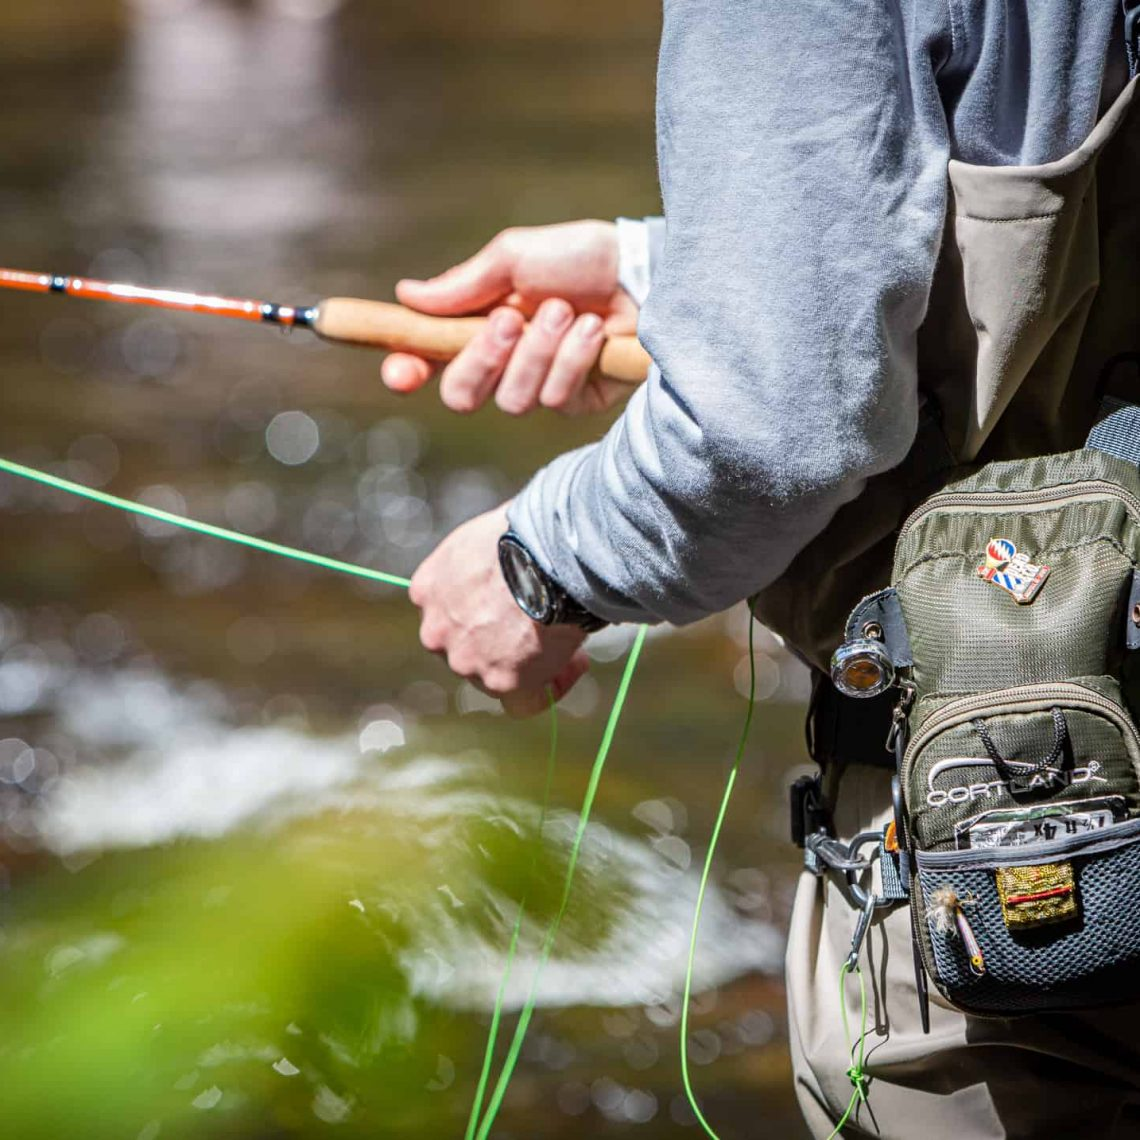 Man fly fishing in river in Maine - Stonetree Creative